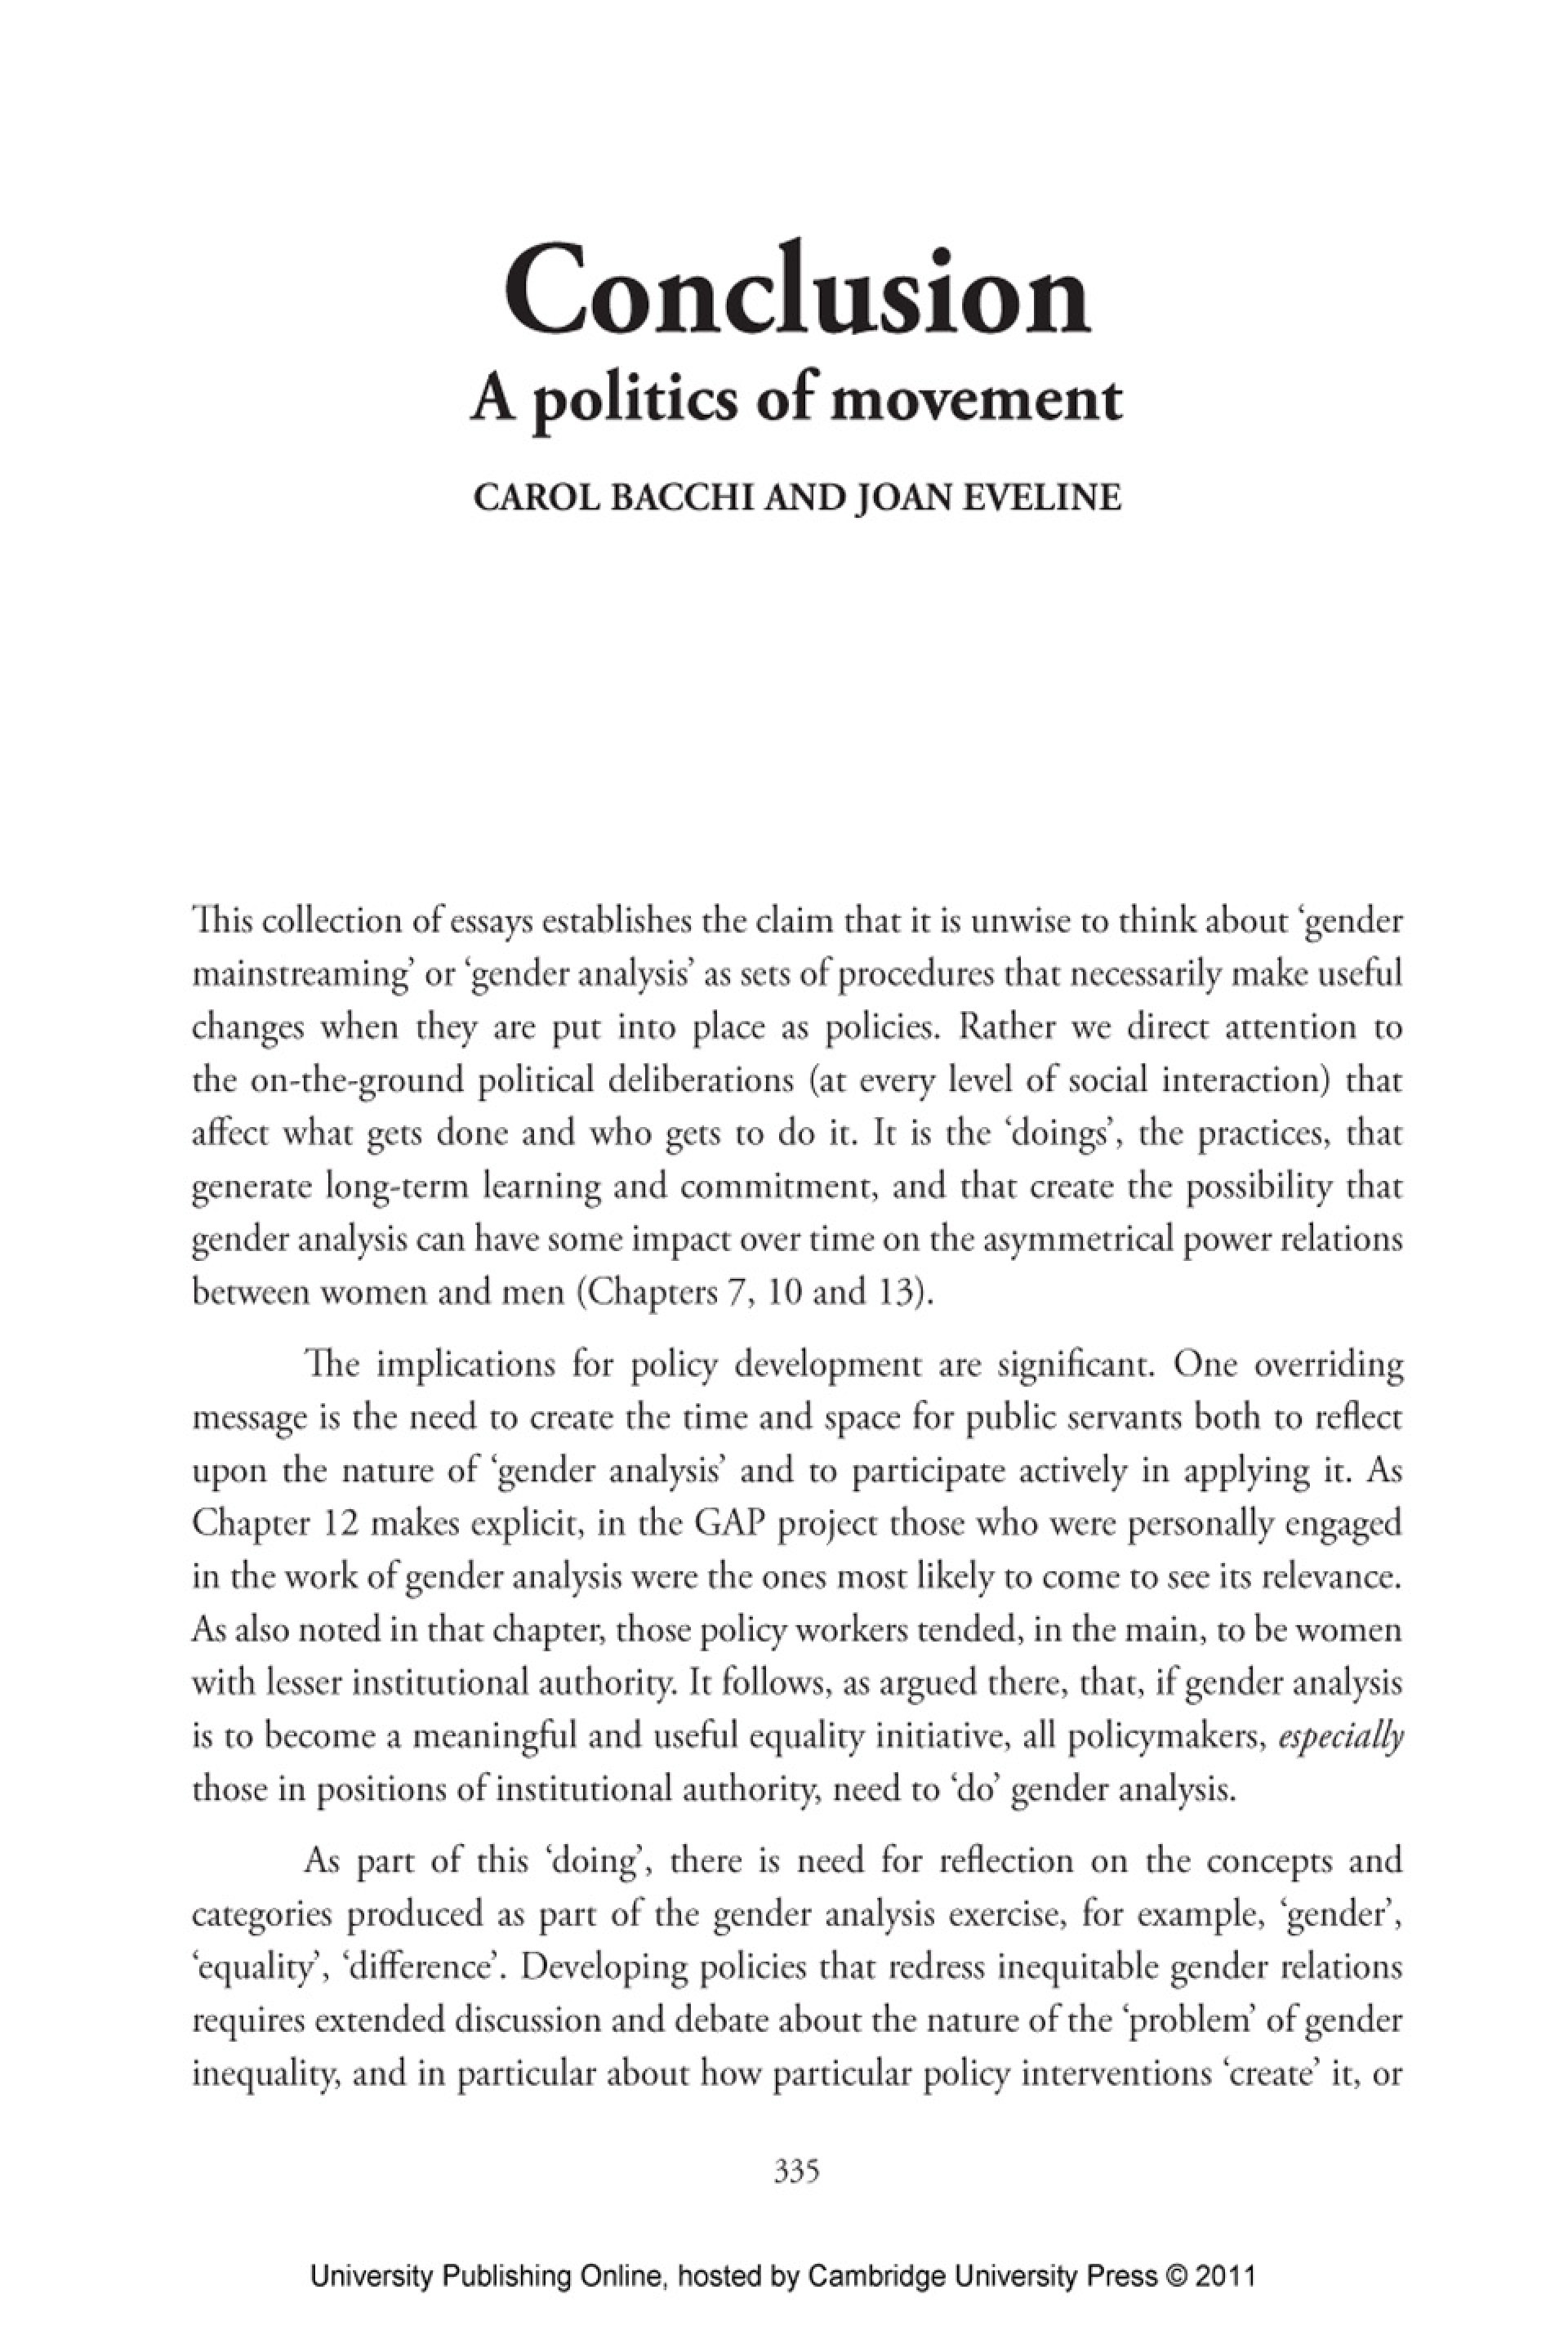 015 Expository Essay Conclusion Help Stonewall Servicess Of Conclusions L Good For An Wondrous A Writing Pdf 1920